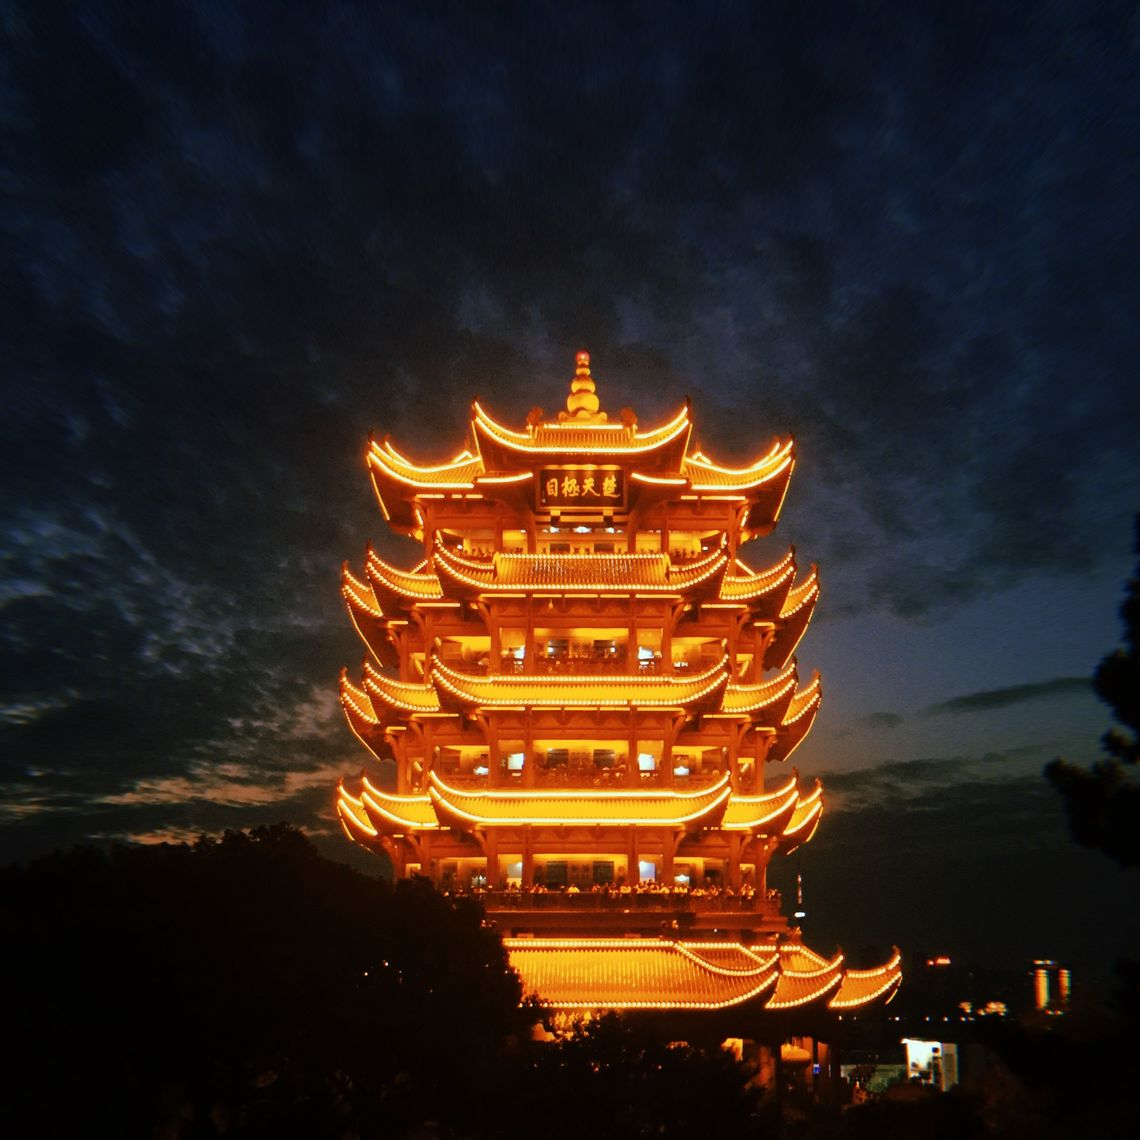 Wuhan's famous Yellow Crane Tower, regarded as one of the Four Great Towers of China.